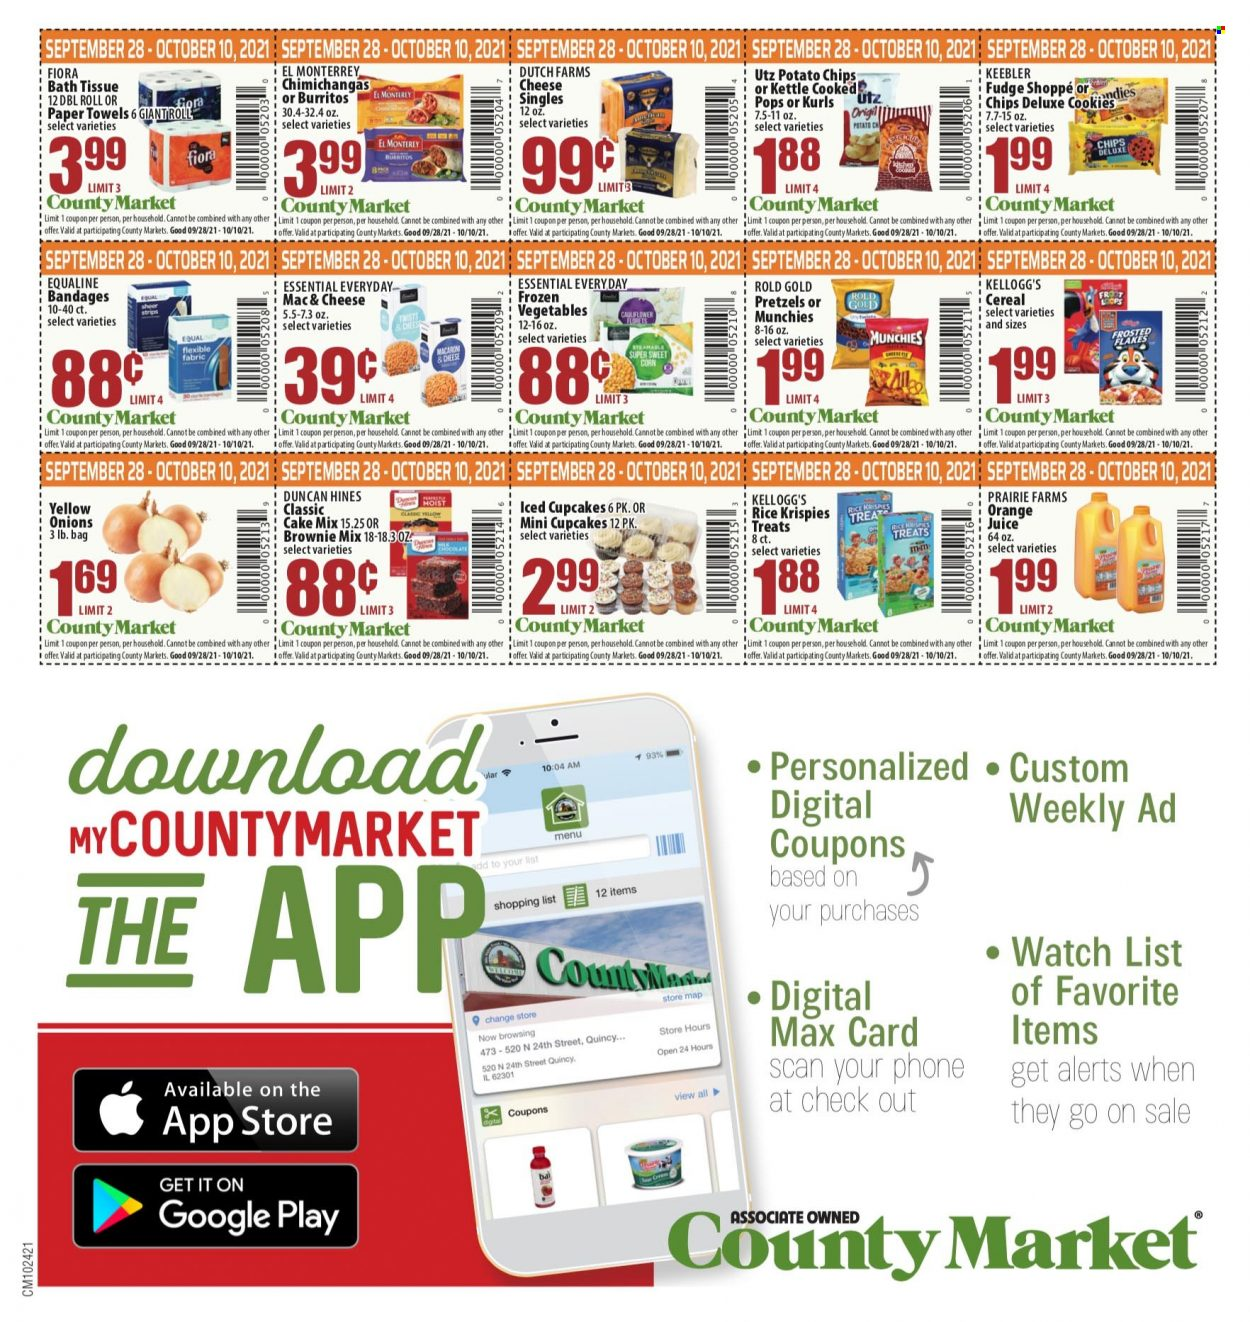 County Market Coupons from september 28 to october 24 2021 - Page 2